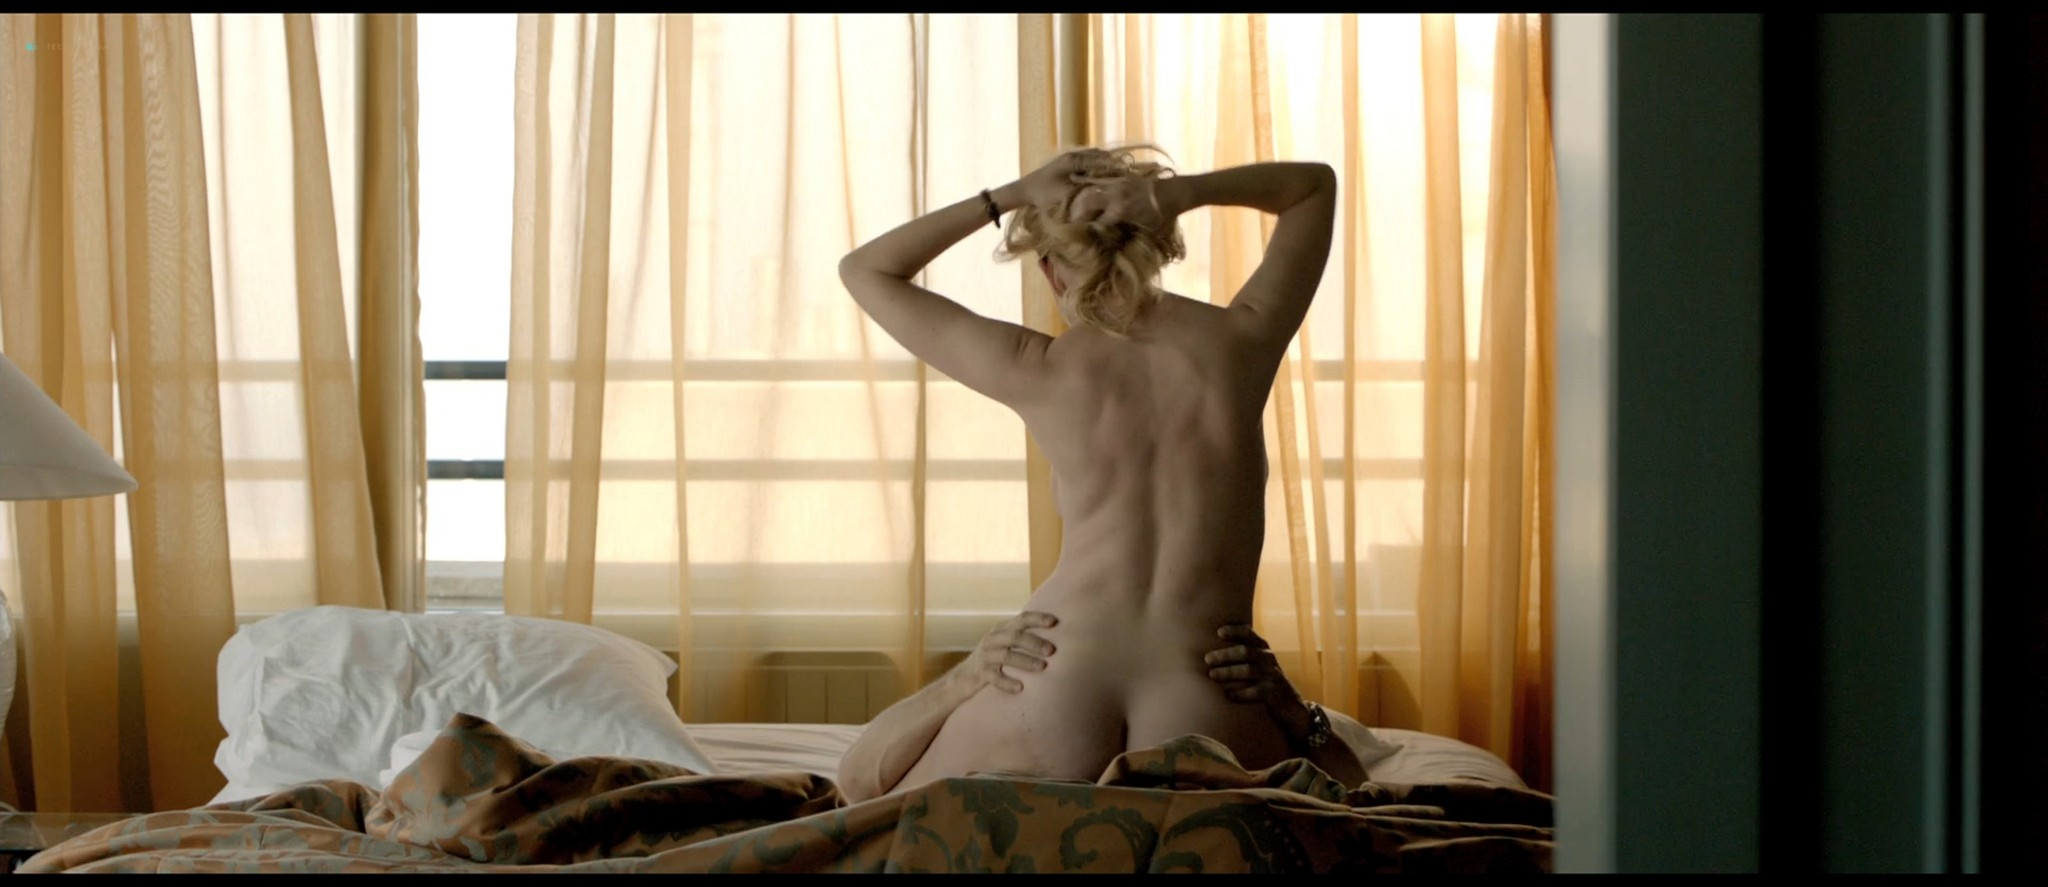 Tjitske Reidinga nude and some sex - De verbouwing (2012) HD 1080p BluRay (5)